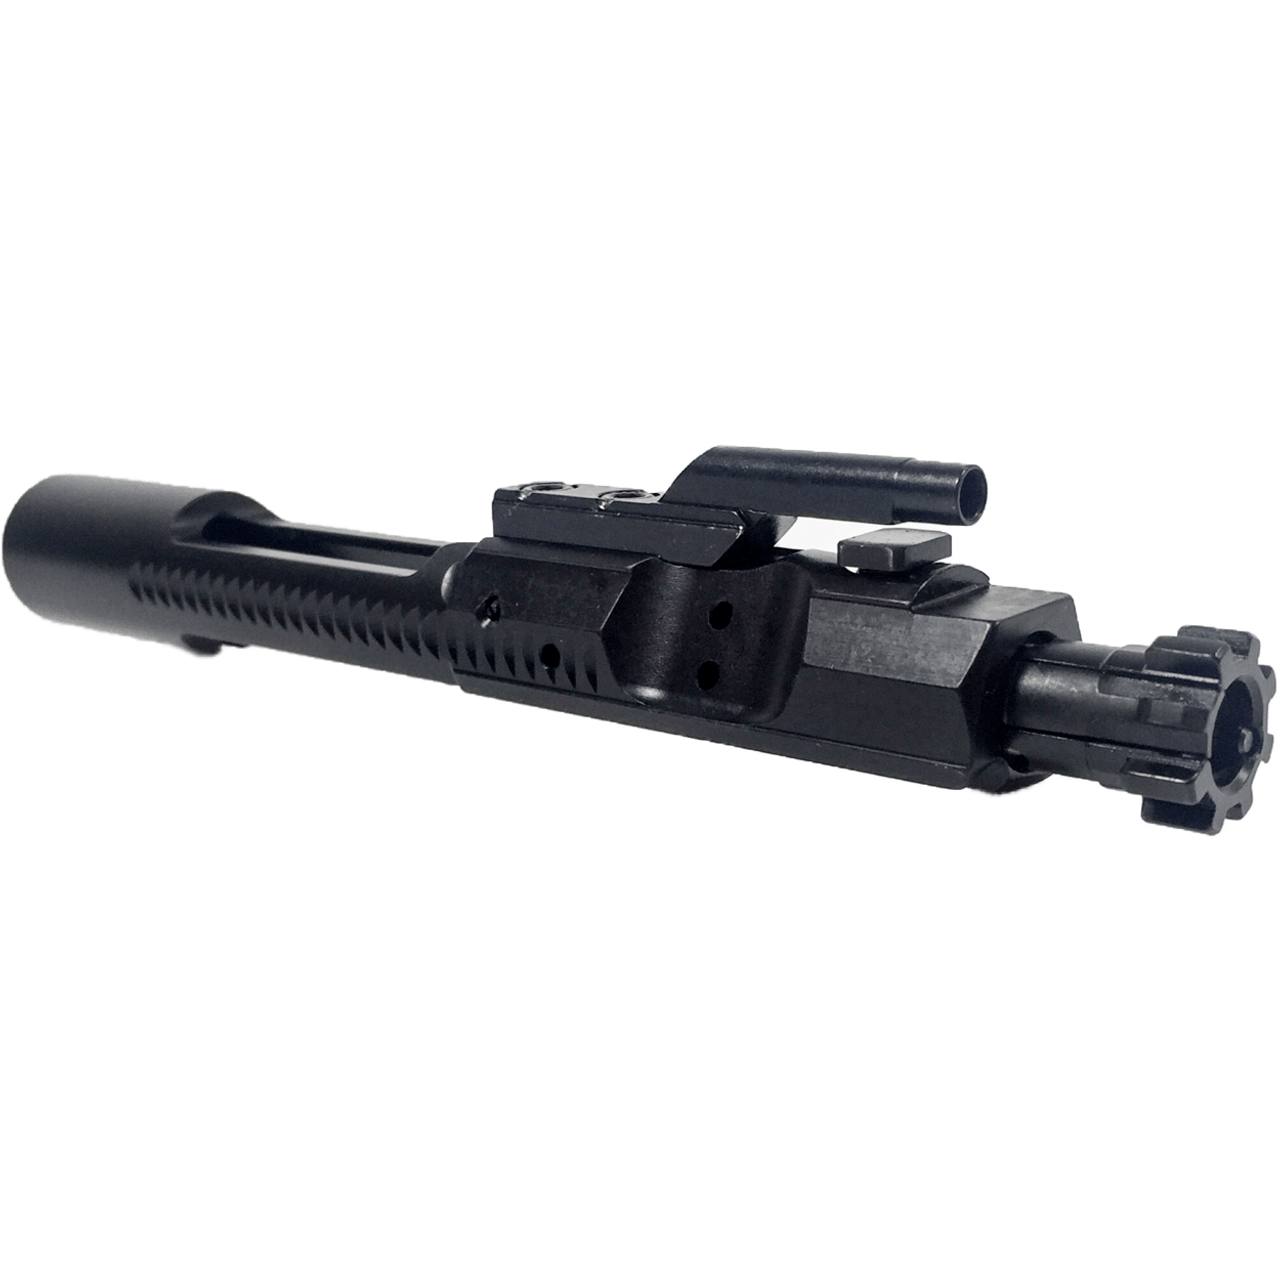 MDX Arms 2.23/5.56/300BO Nitride M16 Full Mass Bolt Carrier Group